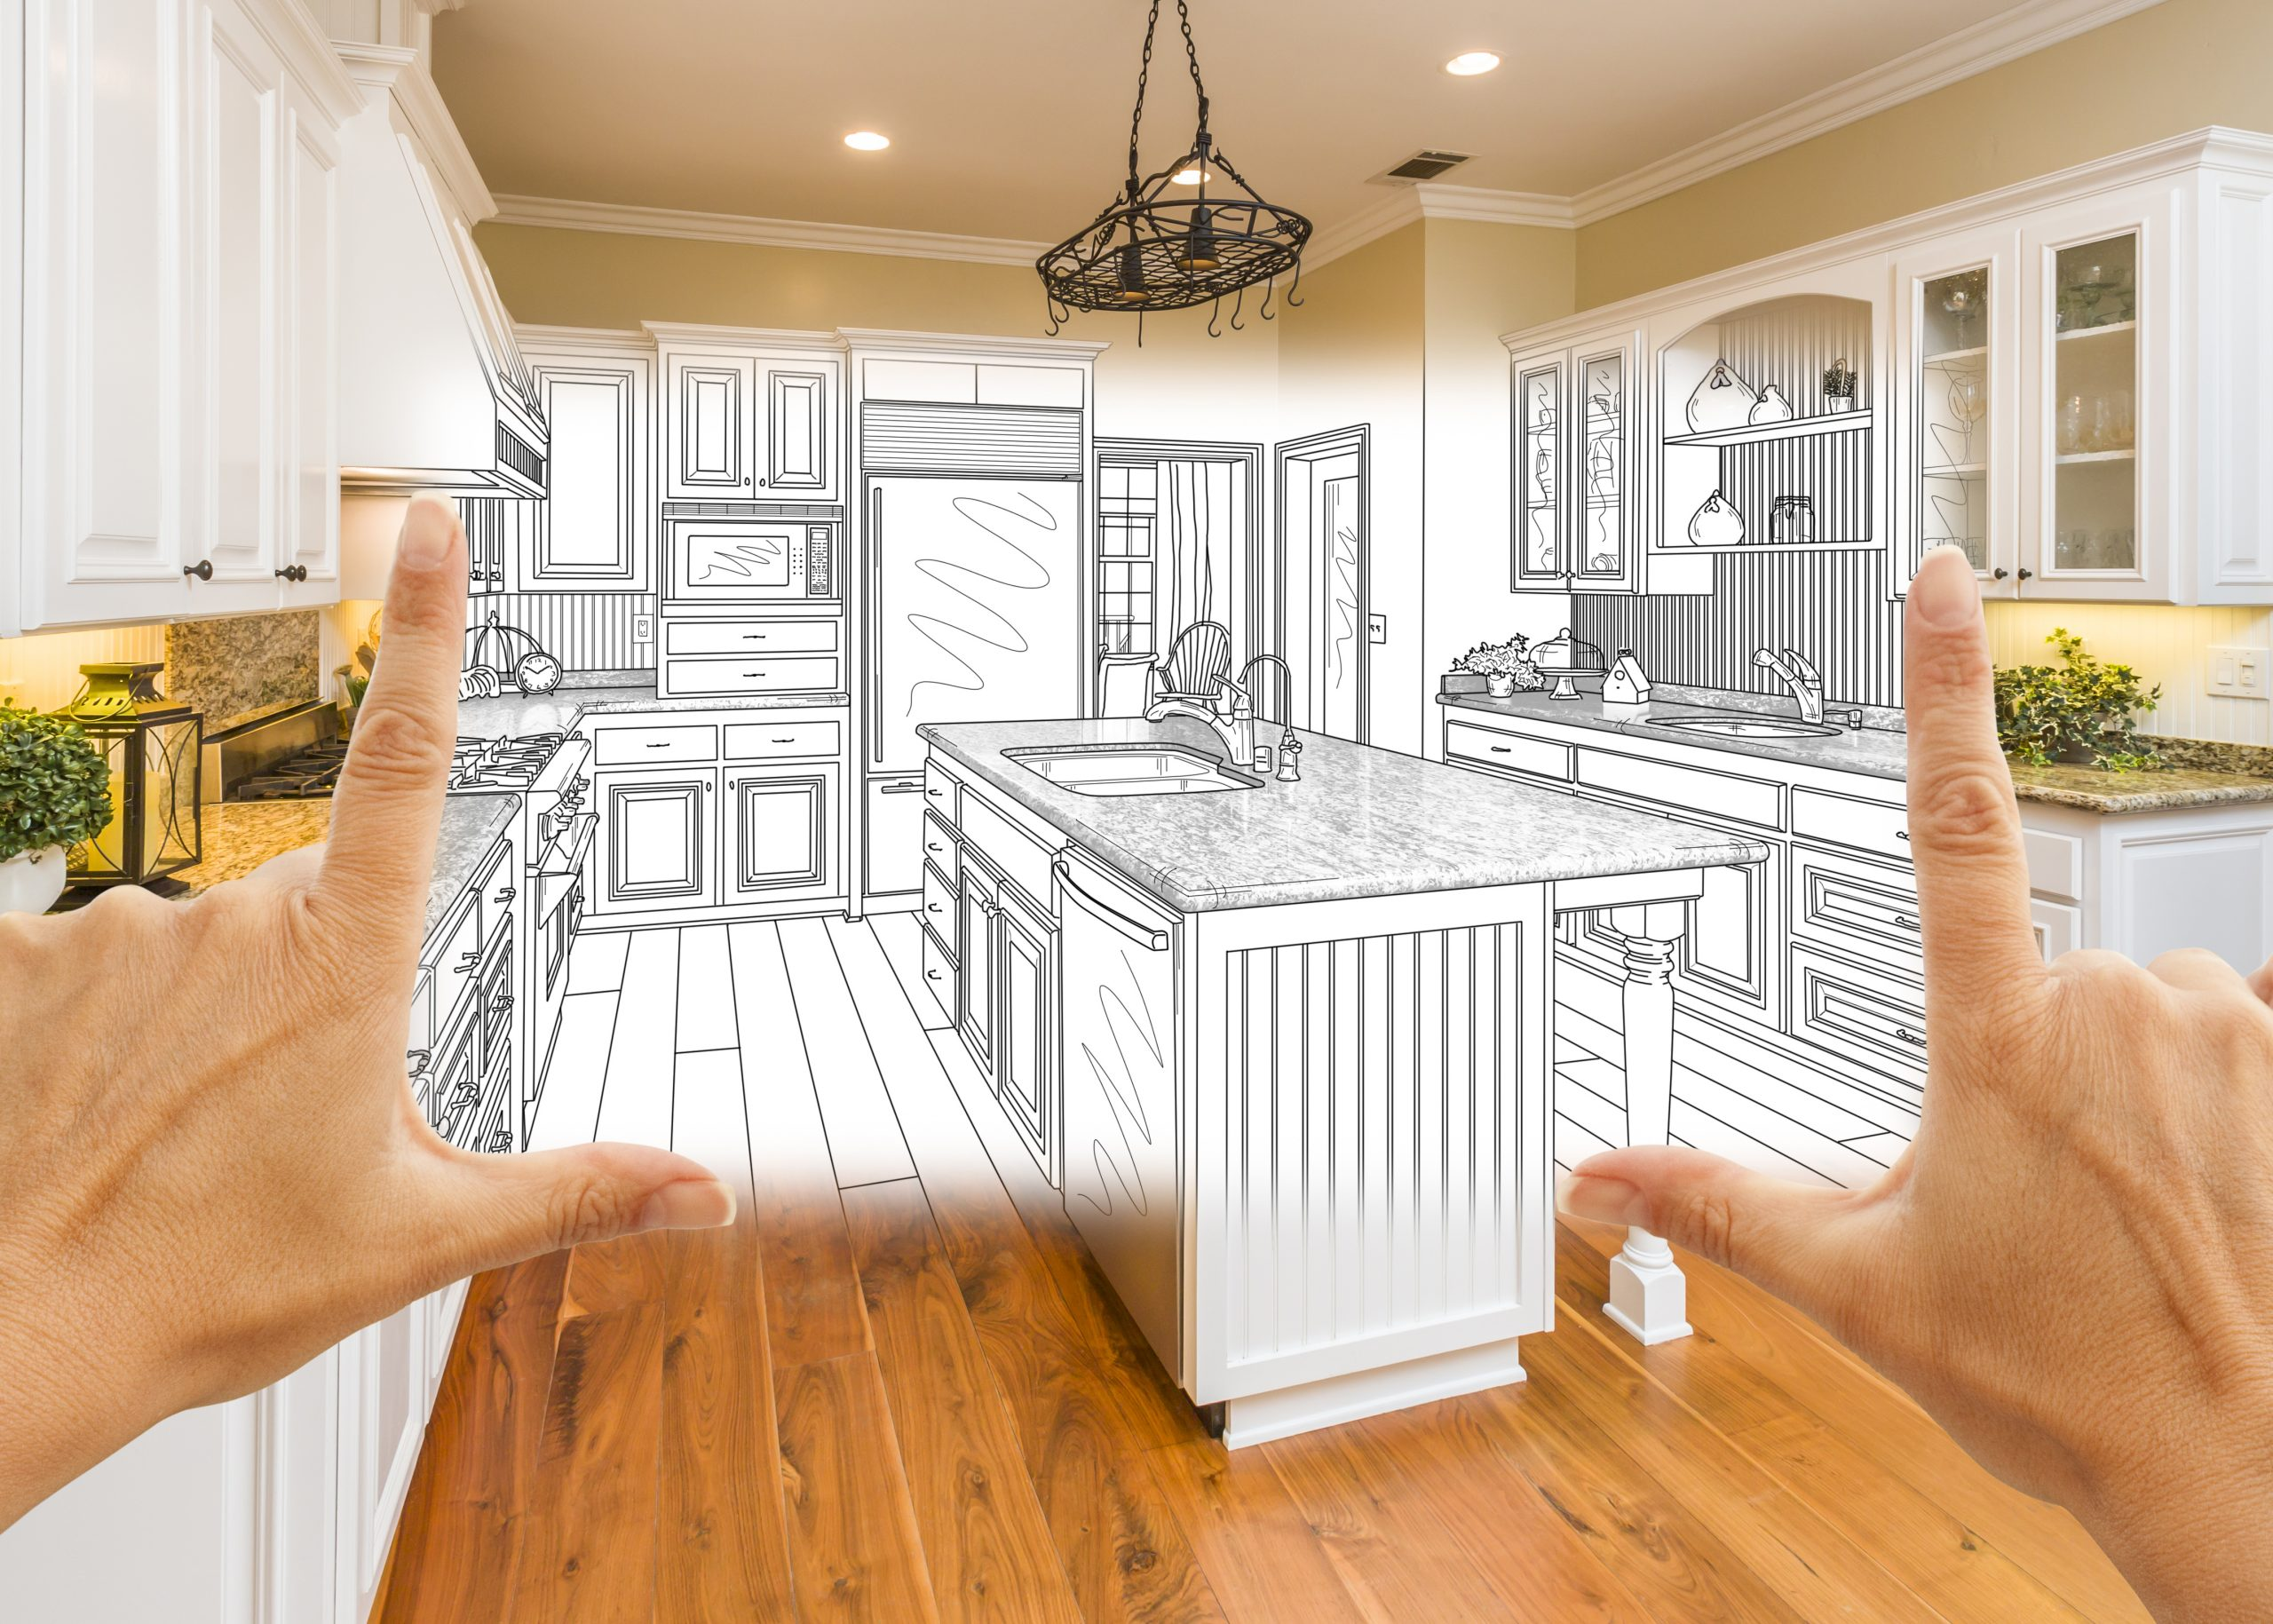 Illustration of kitchen plans. Links to the Bank of Versailles Home Equity Line of Credit page.